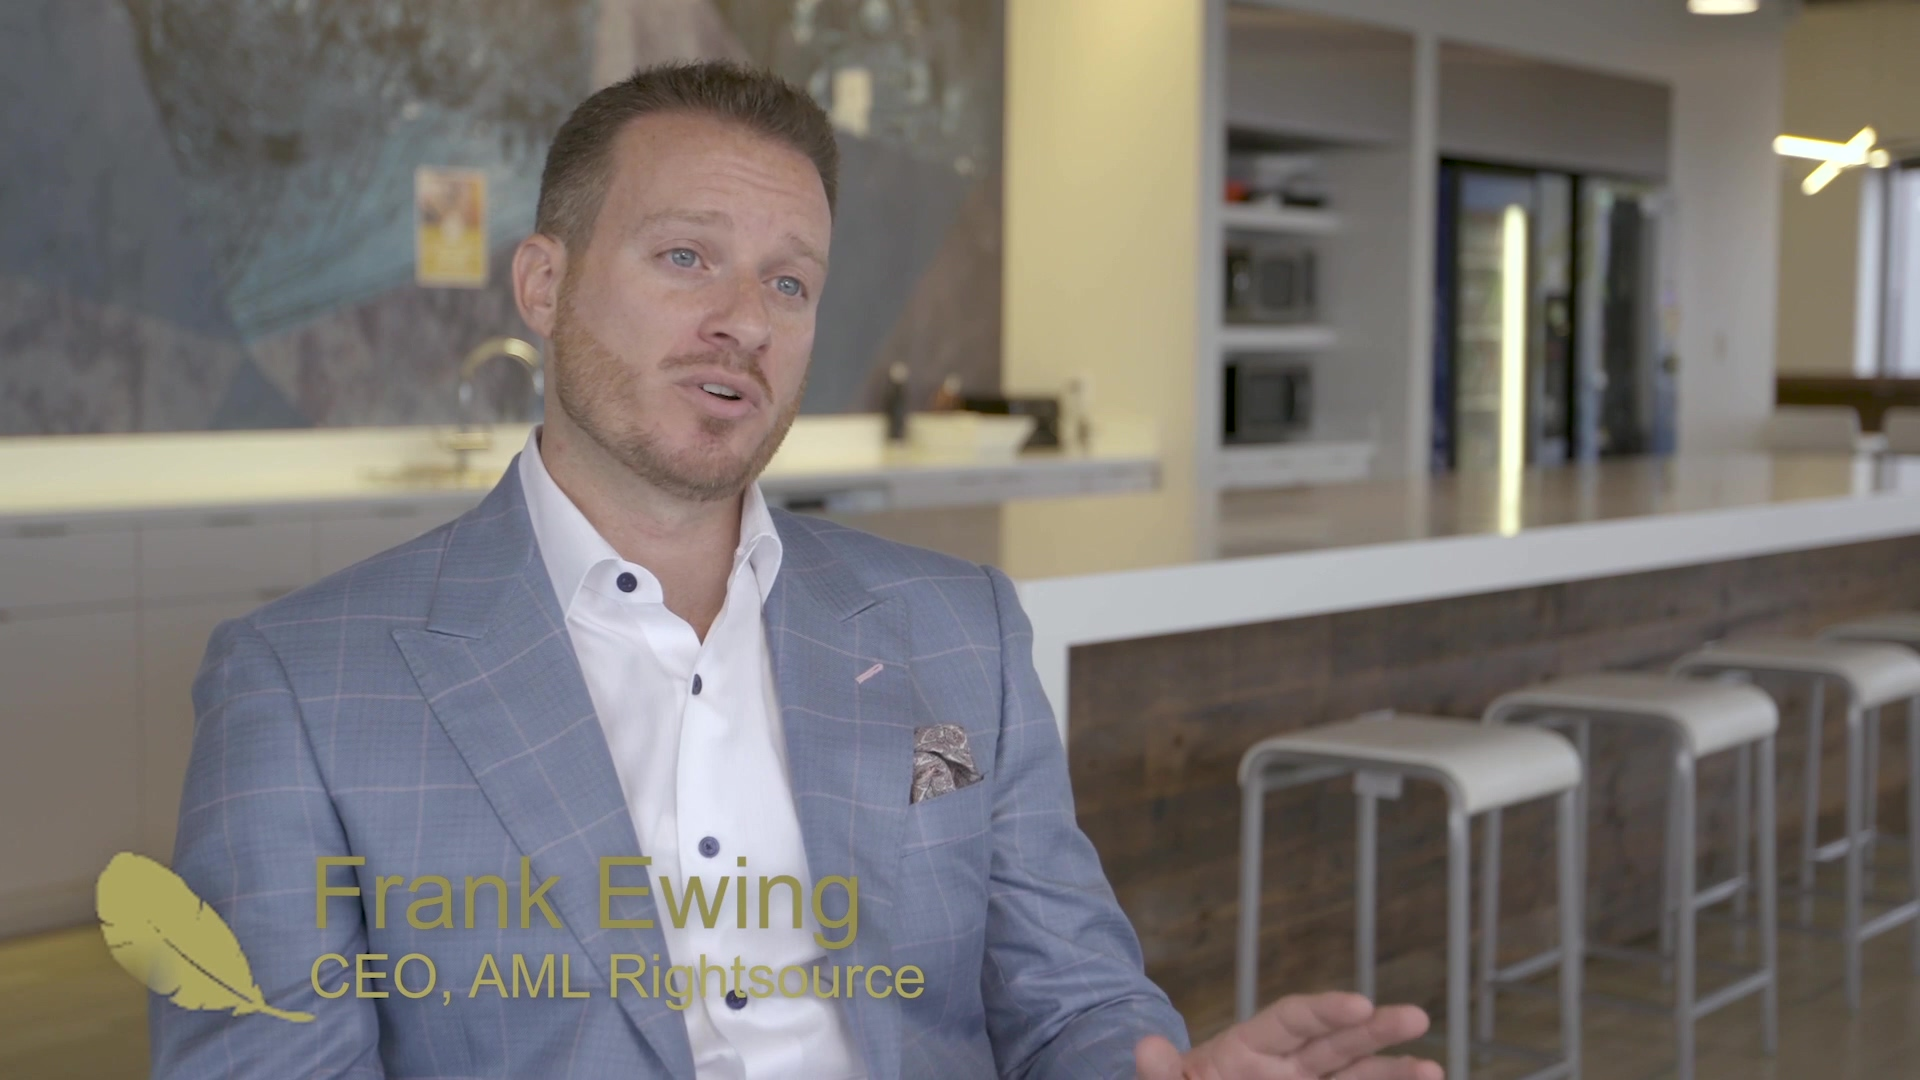 AML RightSource CEO Frank Ewing